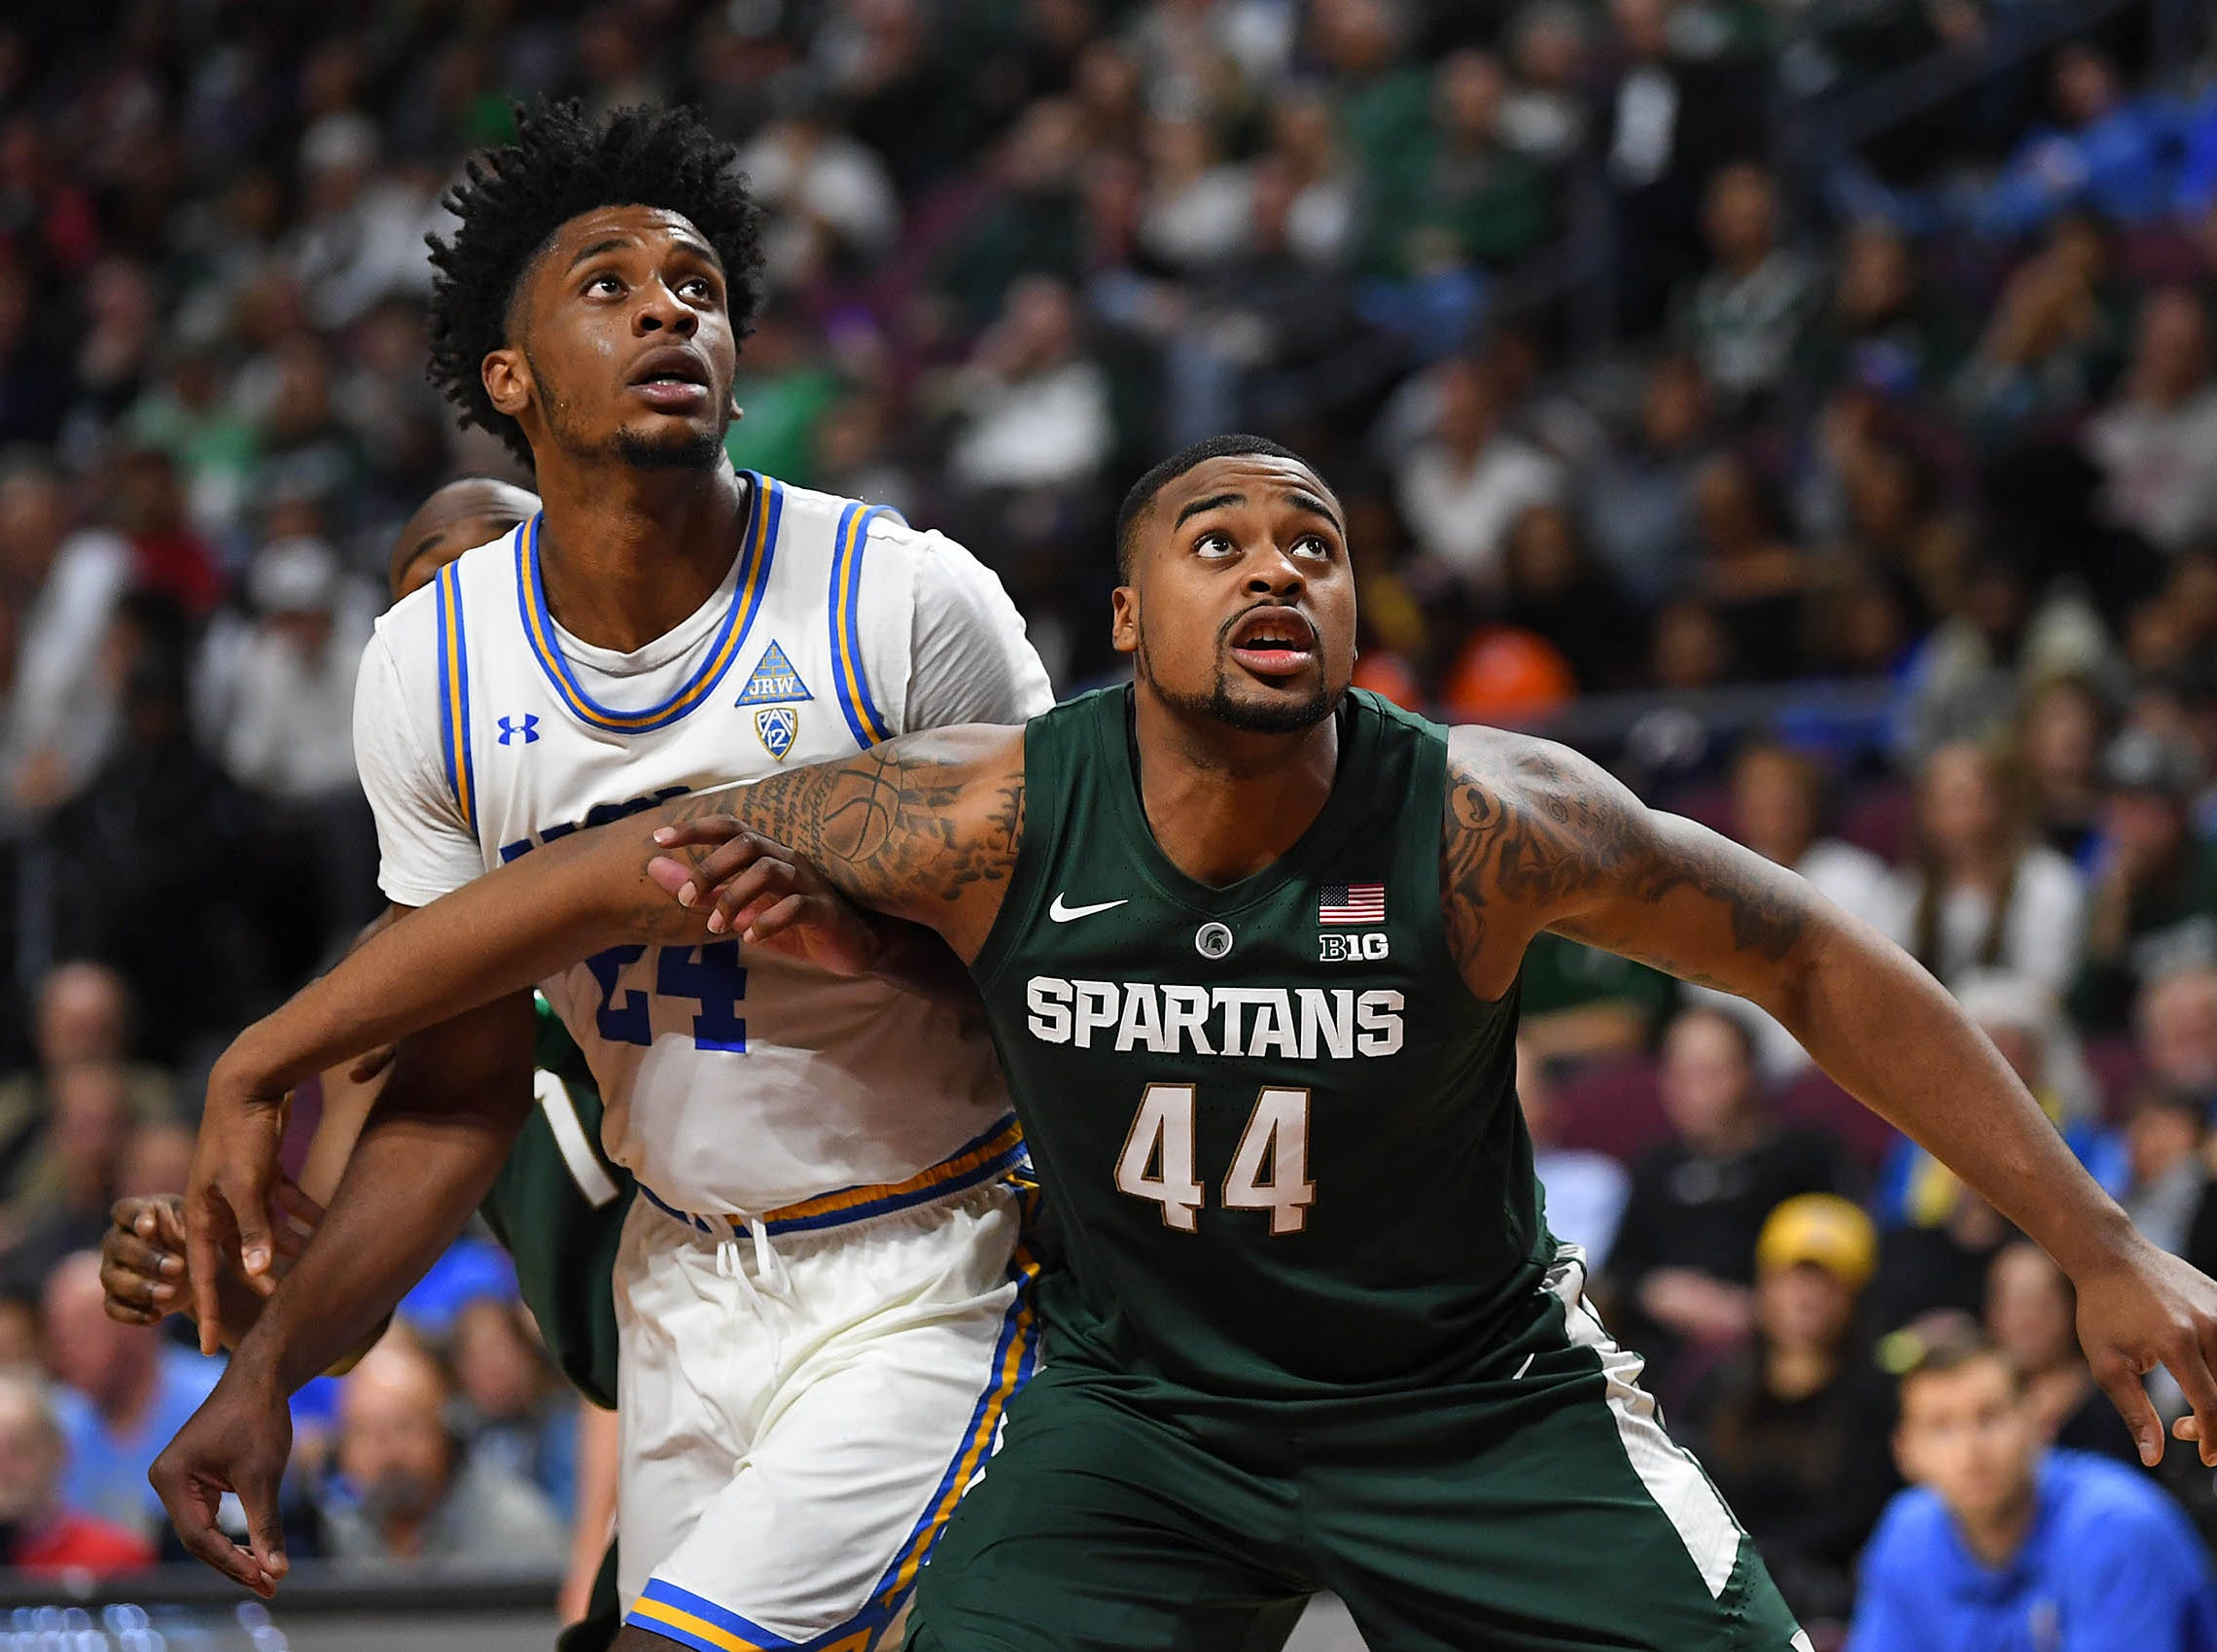 Nov 22, 2018; Las Vegas, NV, USA; Michigan State Spartans forward Nick Ward (44) blocks out UCLA Bruins guard Jalen Hill (24) during a second half free throw attempt at Orleans Arena. Mandatory Credit: Stephen R. Sylvanie-USA TODAY Sports